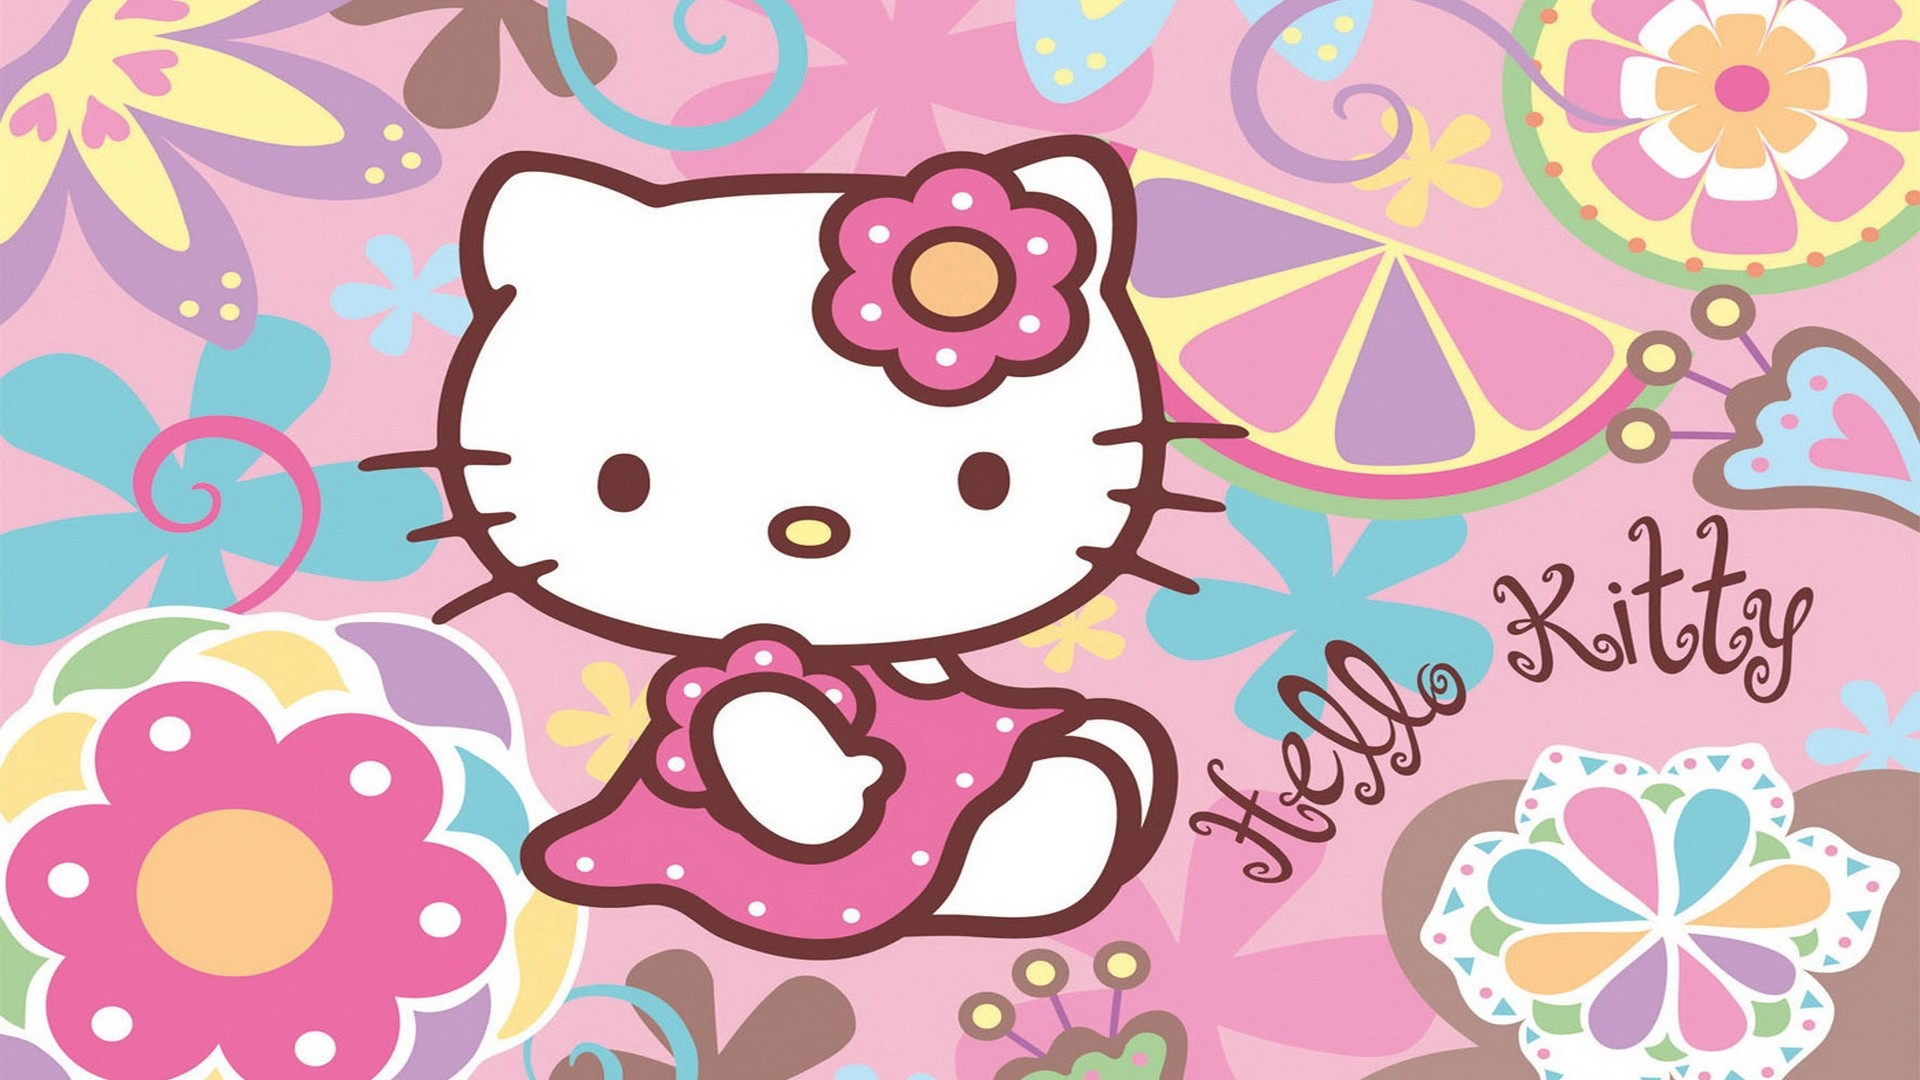 Gambar Hello Kitty Wallpaper Hd Animasi Bergerak Lucu